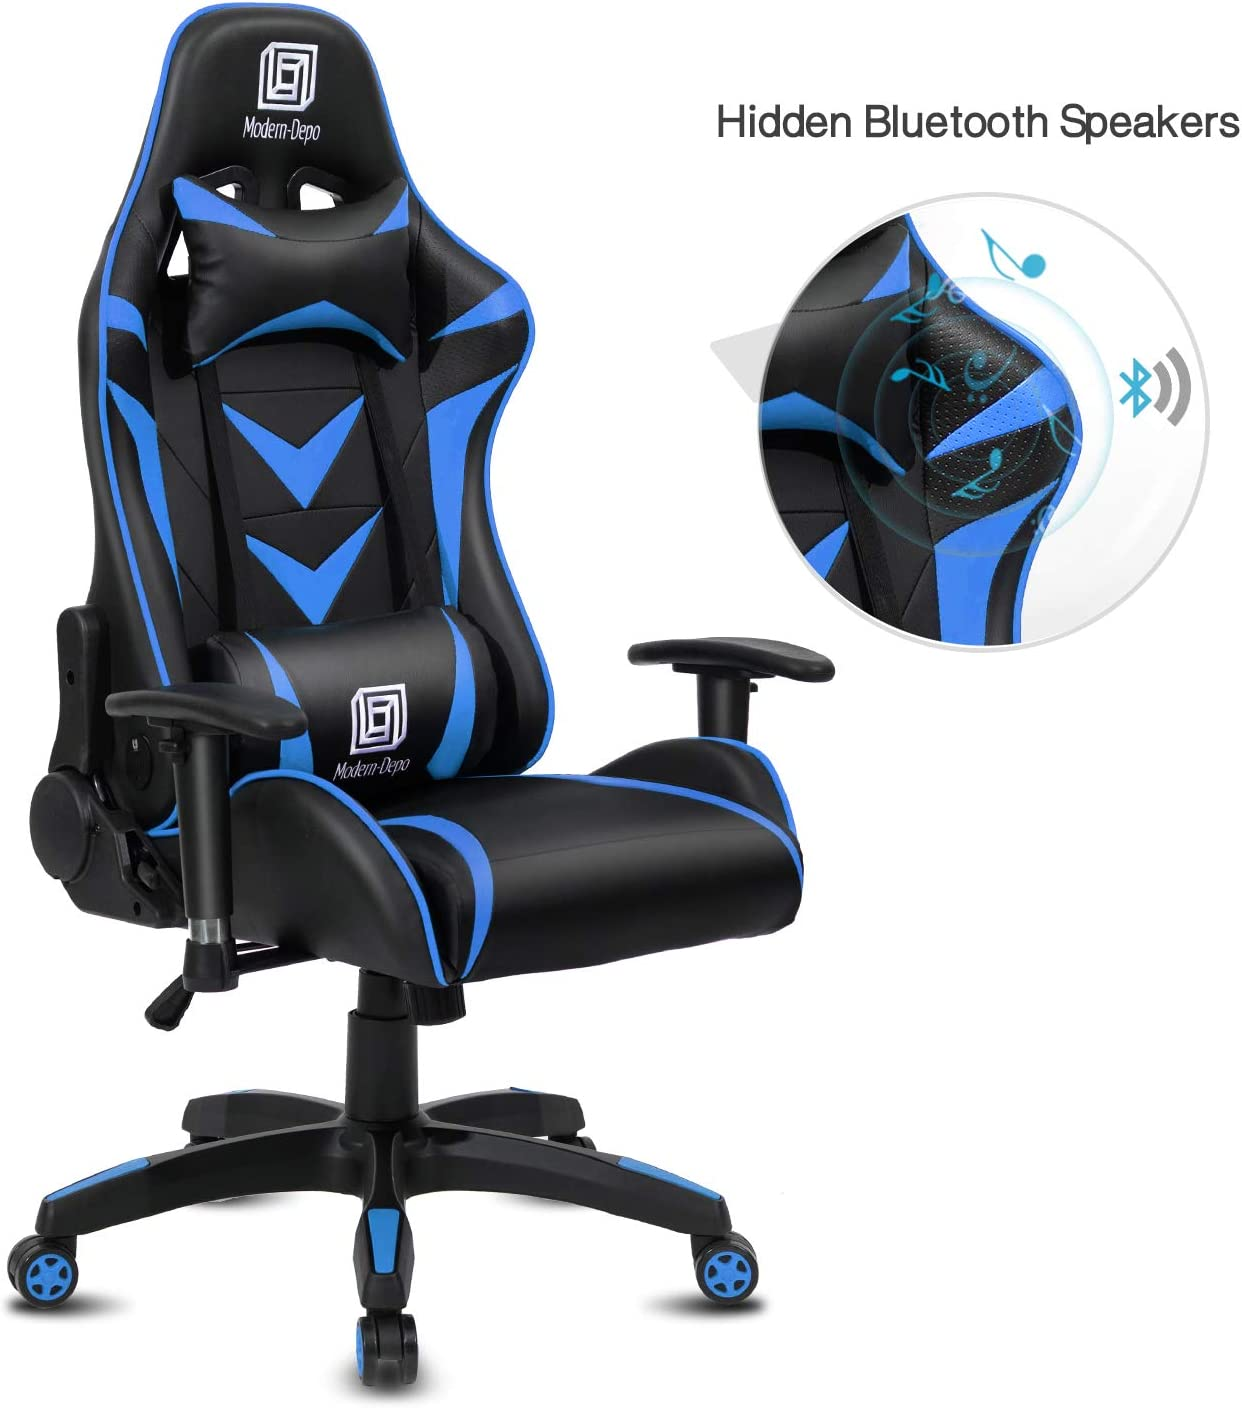 Modern-Depo Gaming Chair with Bluetooth speakers